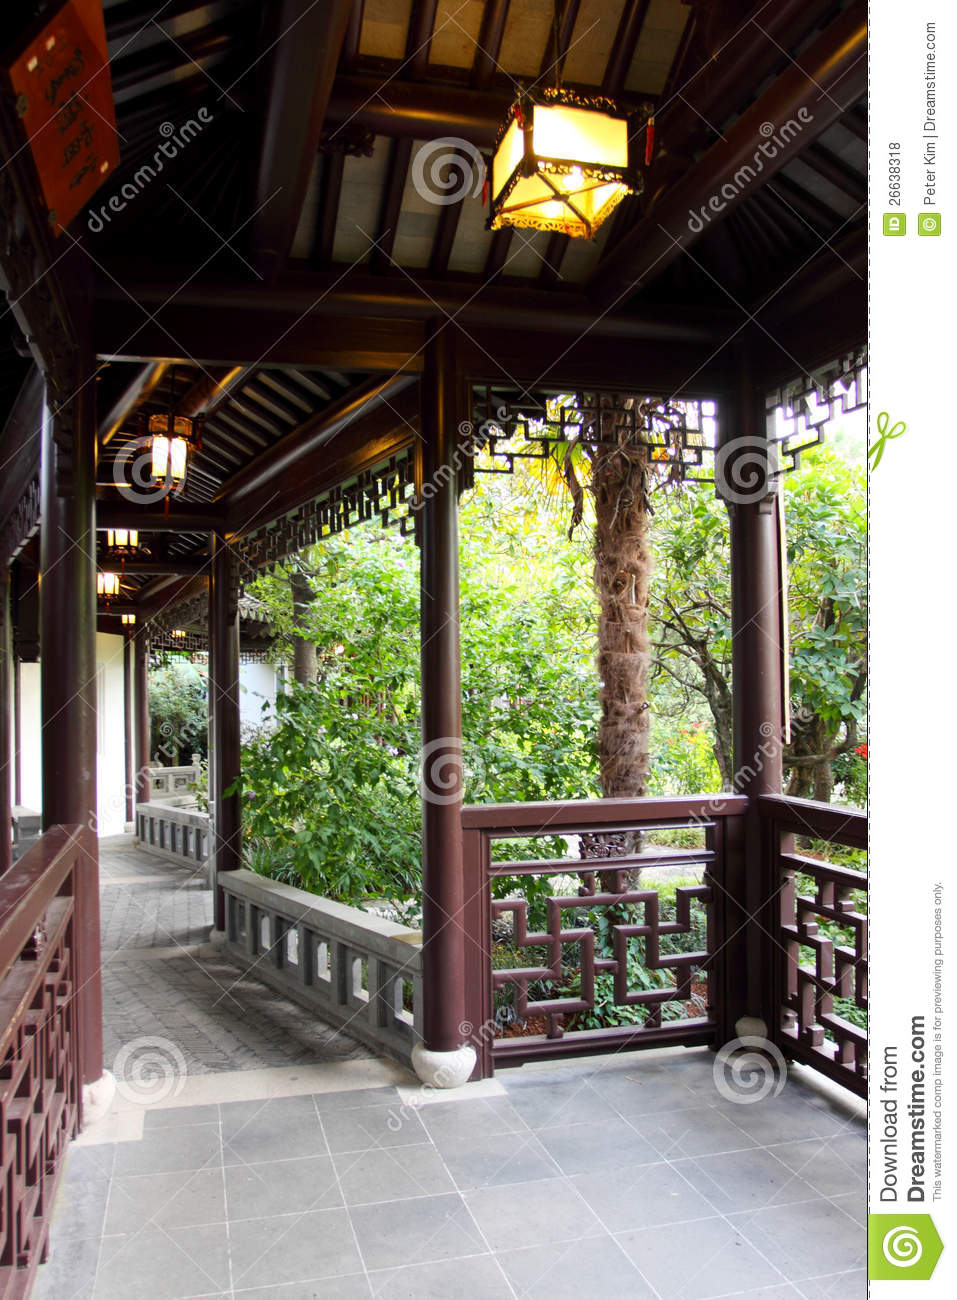 Covered Walkway Royalty Free Stock Photos Image 26638318